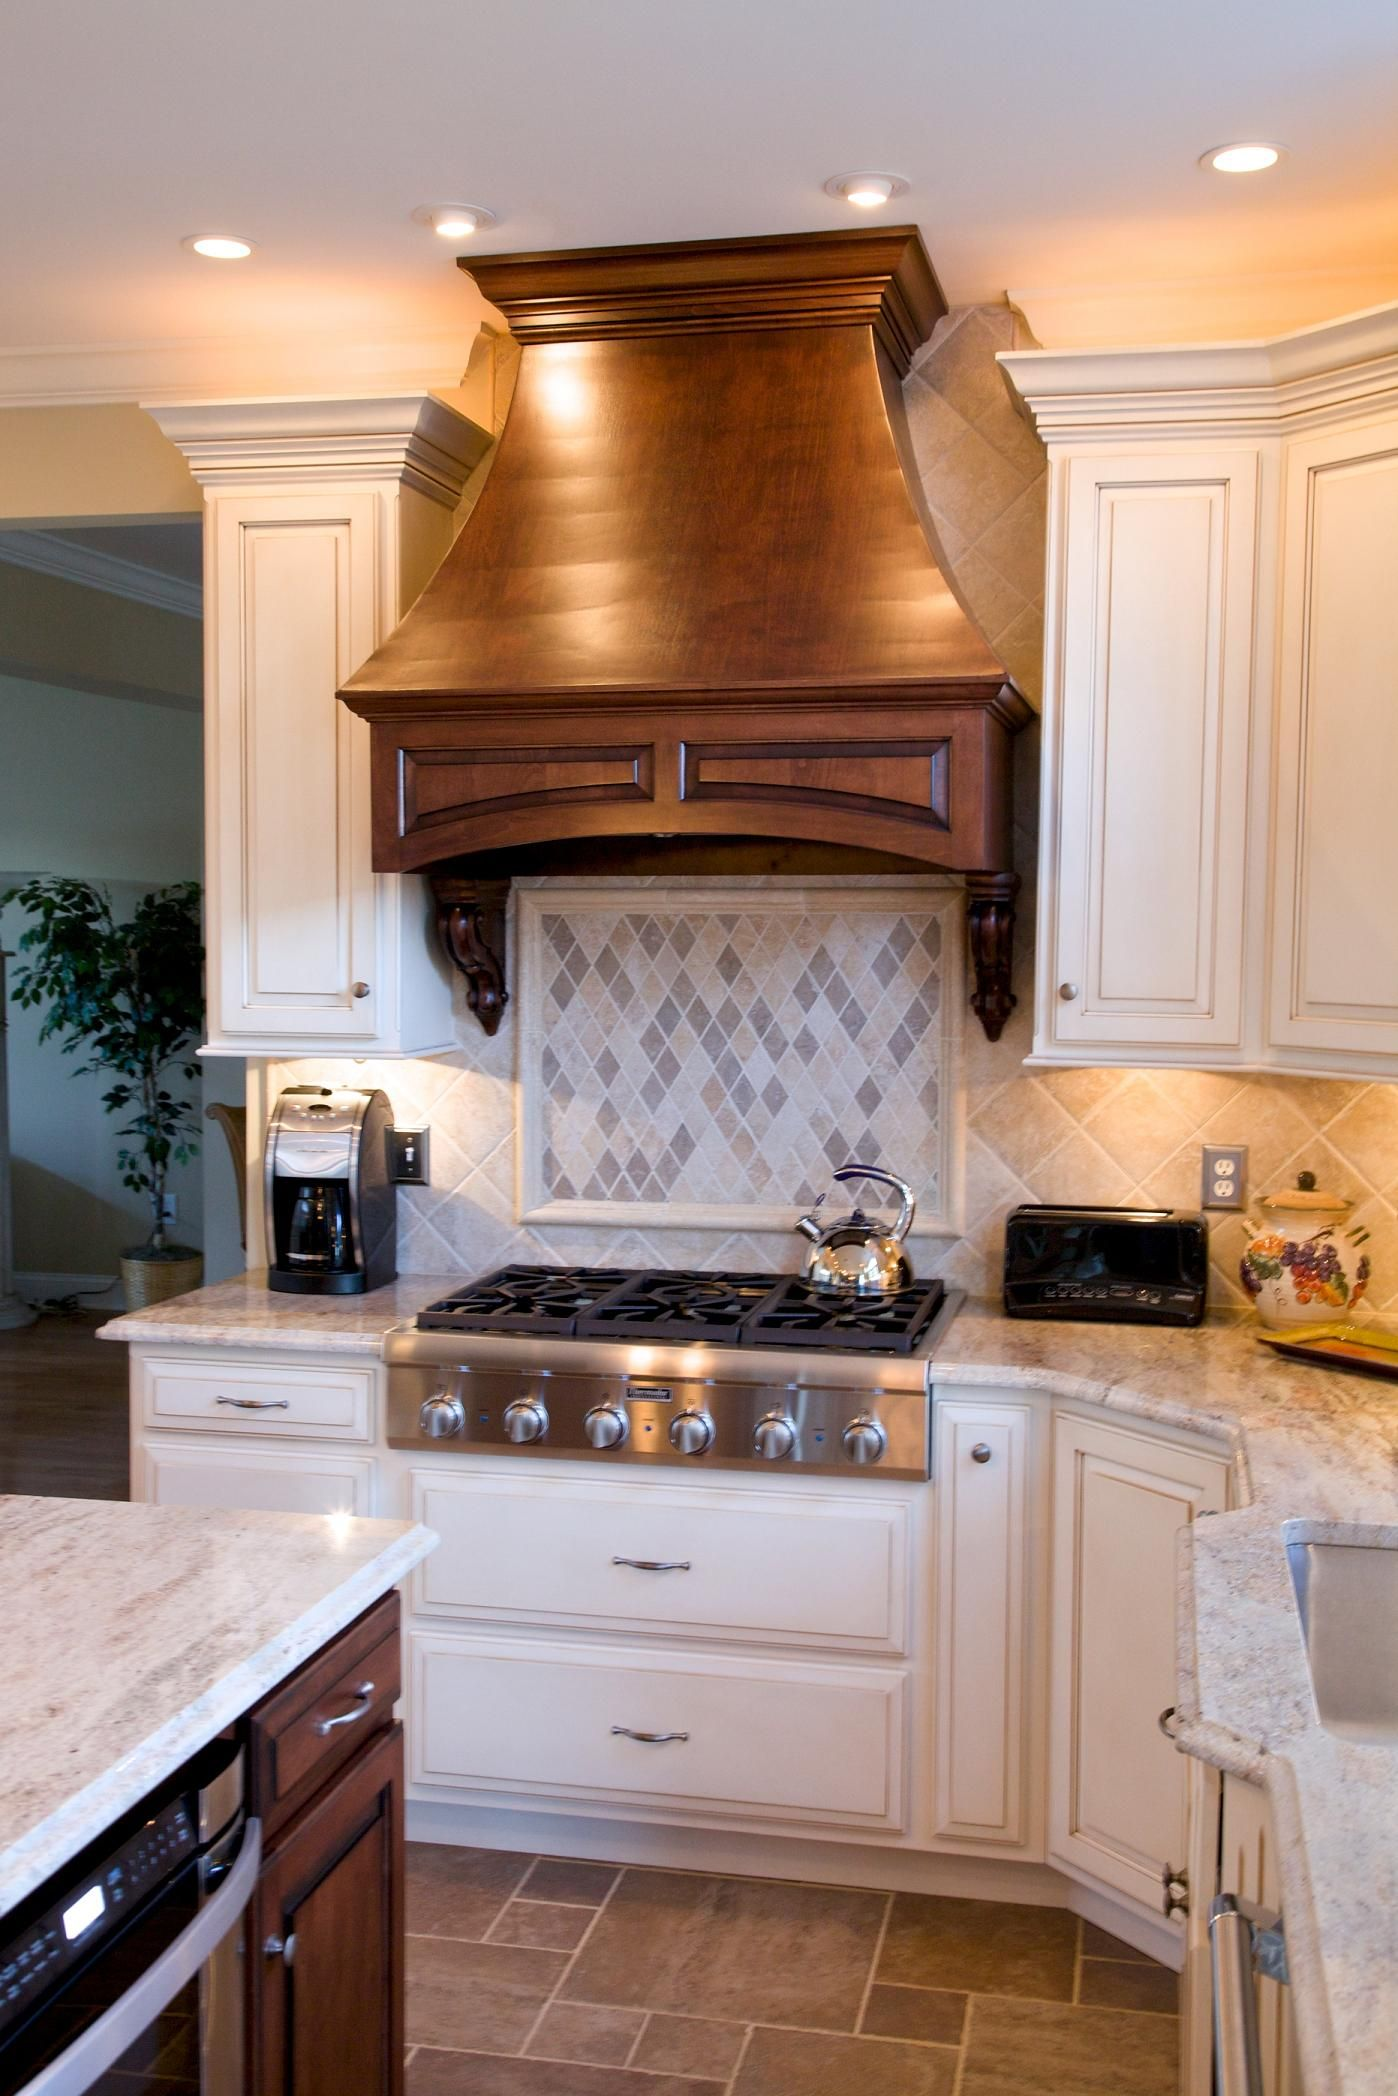 Granite With Cream Cabinets Kashmir Gold Granite Countertops With Natural Stone Backsplash